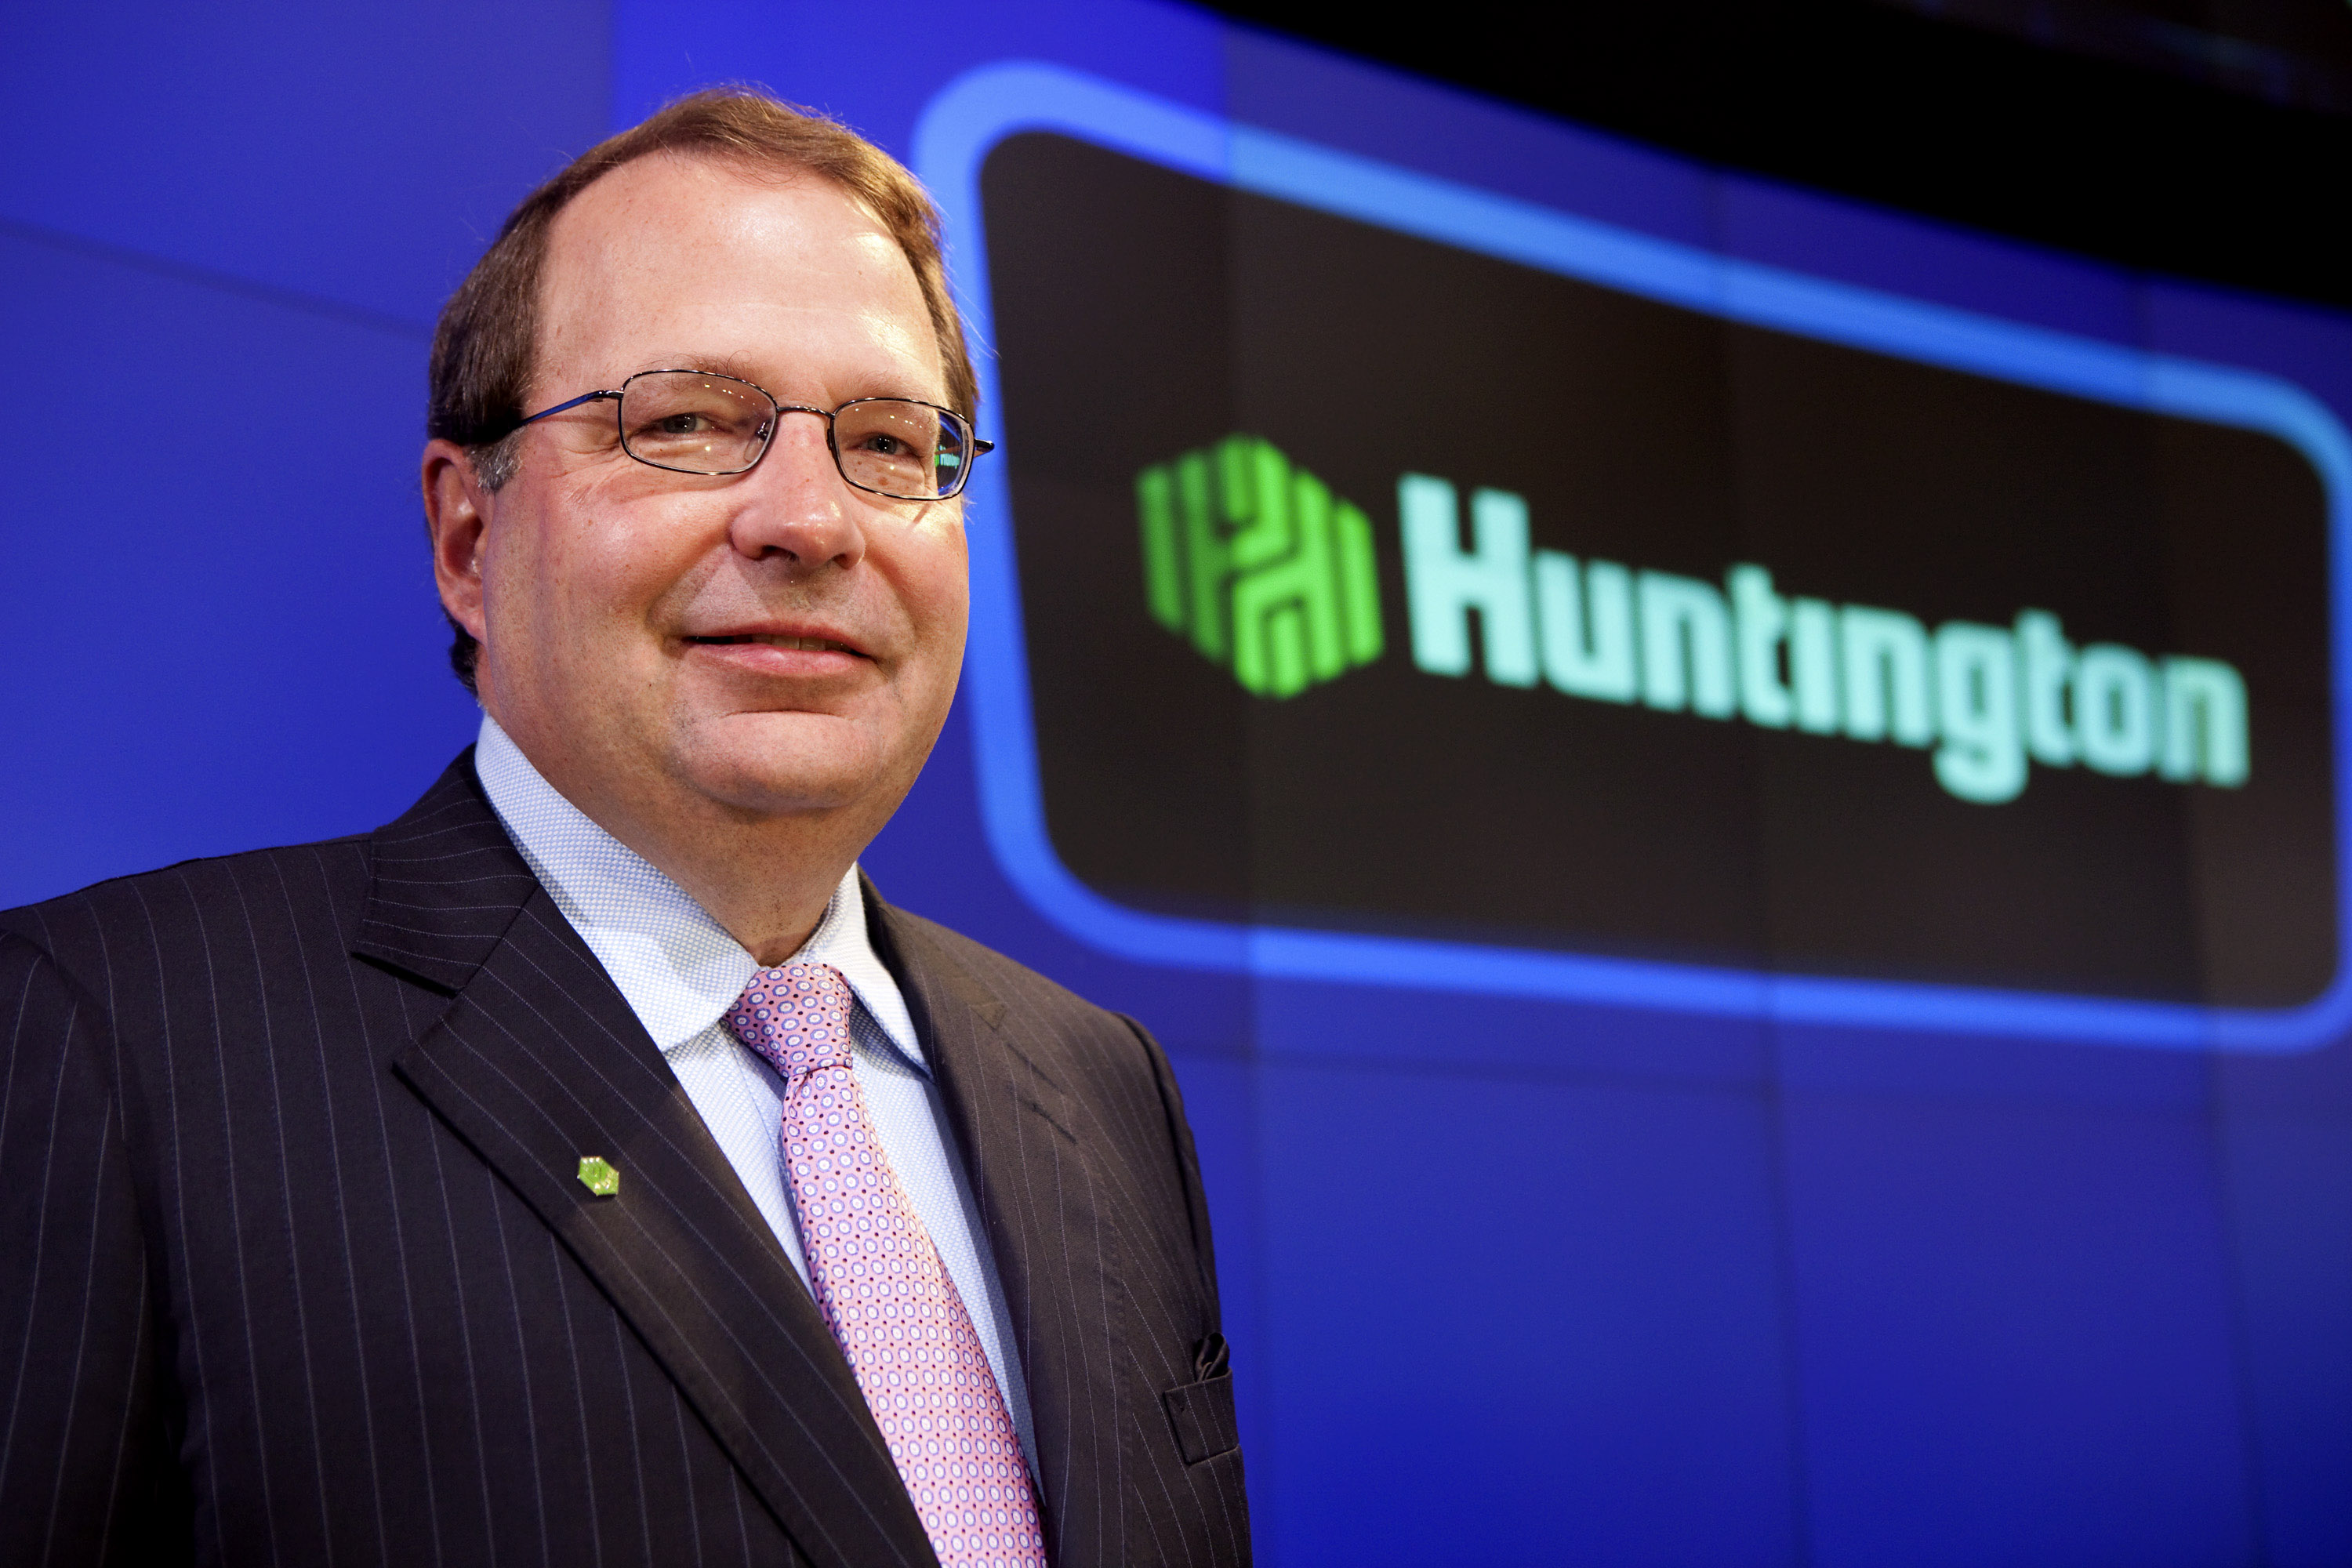 Huntington Bancshares CEO Steve Steinour Rings Nasdaq Opening Bell